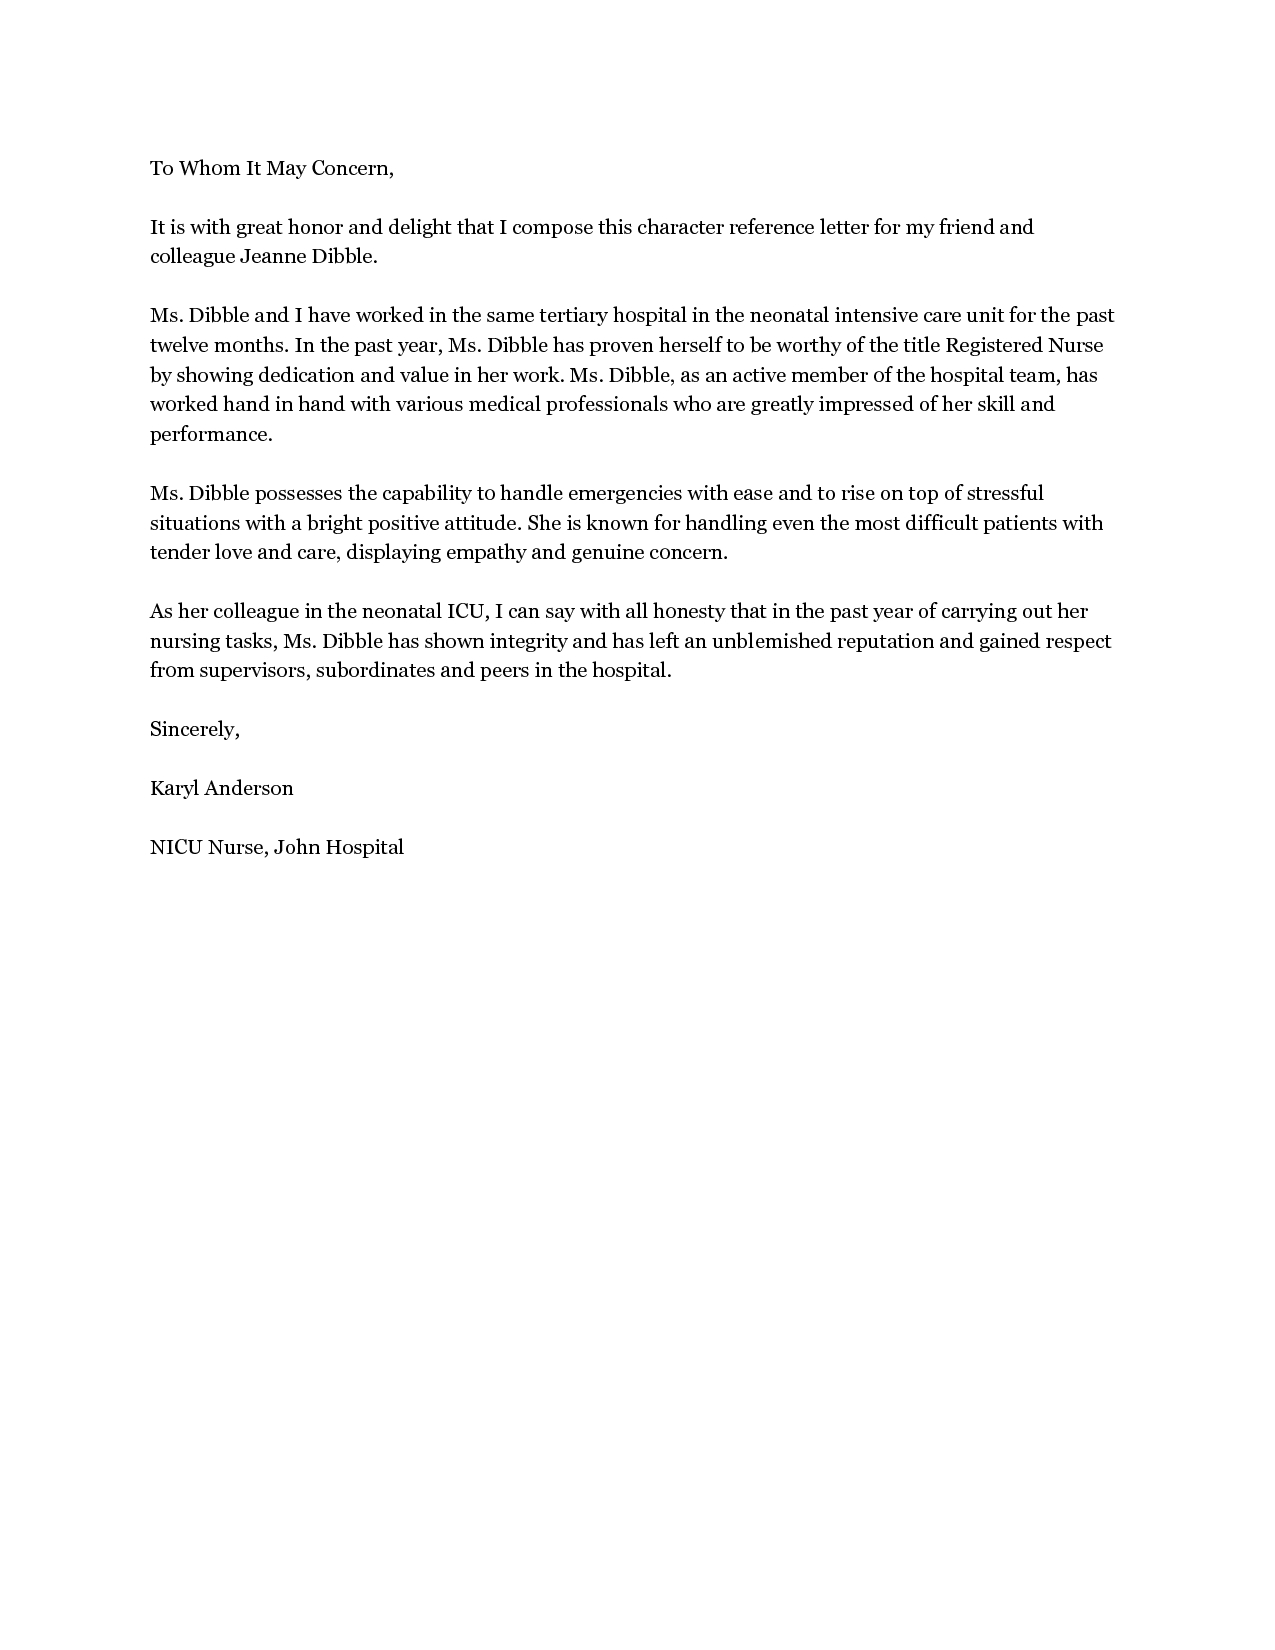 Personal Character Reference Letter Friend Jos Gandos With Letter Of Recommendation For A Friend Template